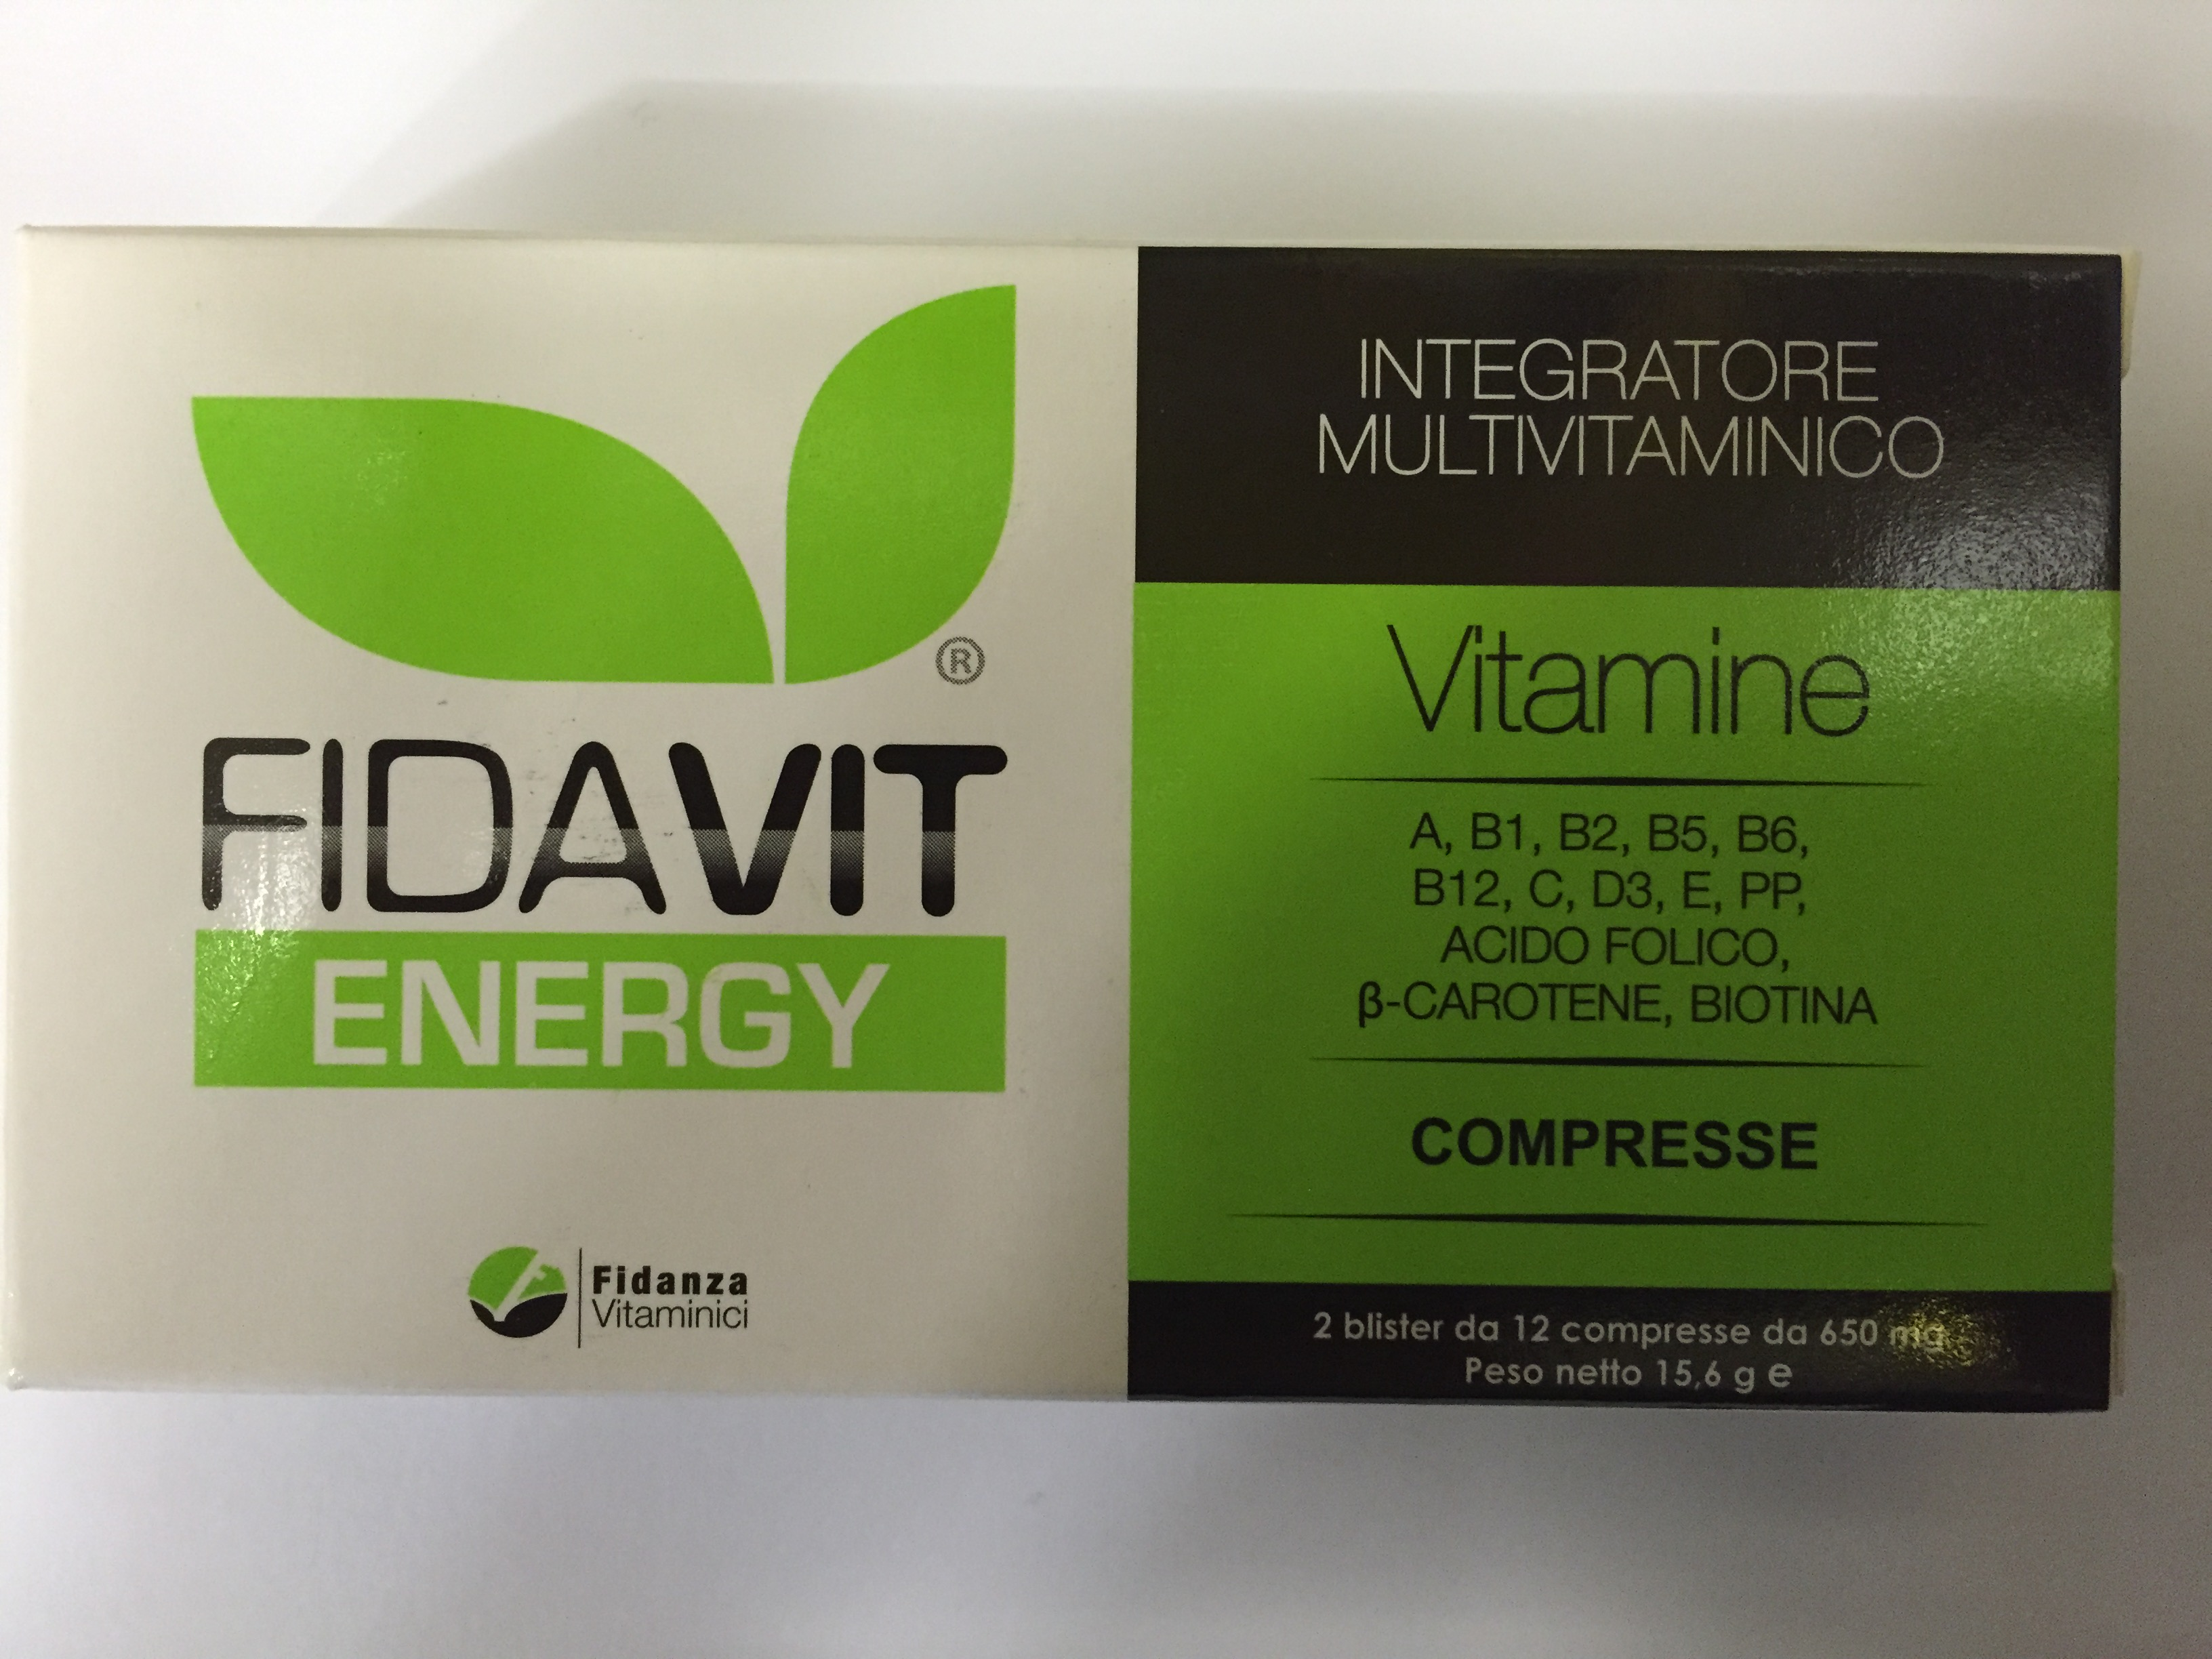 fidavit-energy-integratore-multivitamico-24-compresse